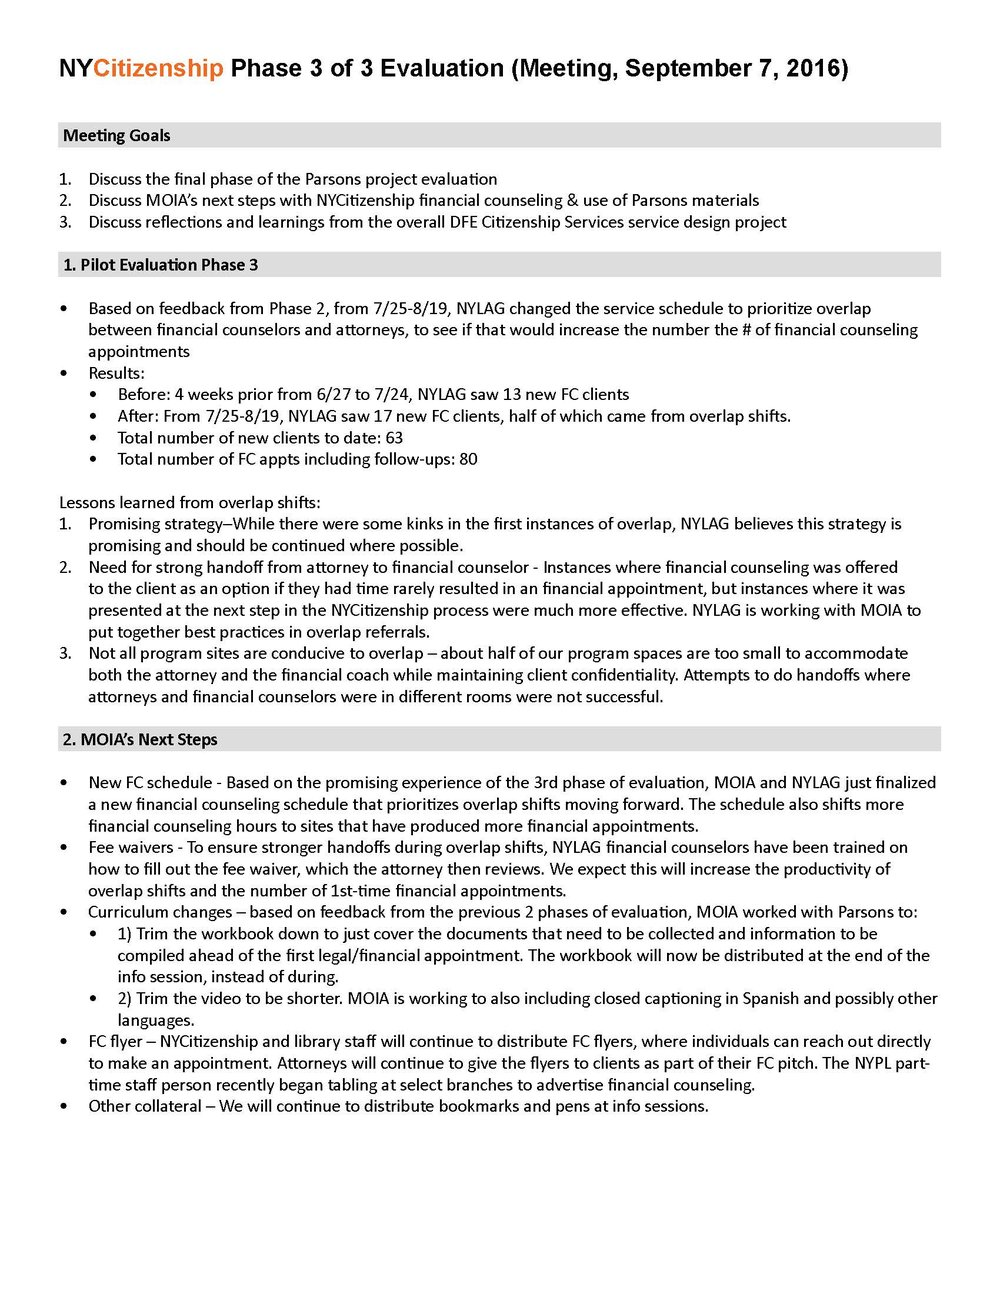 NYCitizenship Parsons Pilot Evaluation - Phase 3_Page_1.jpg